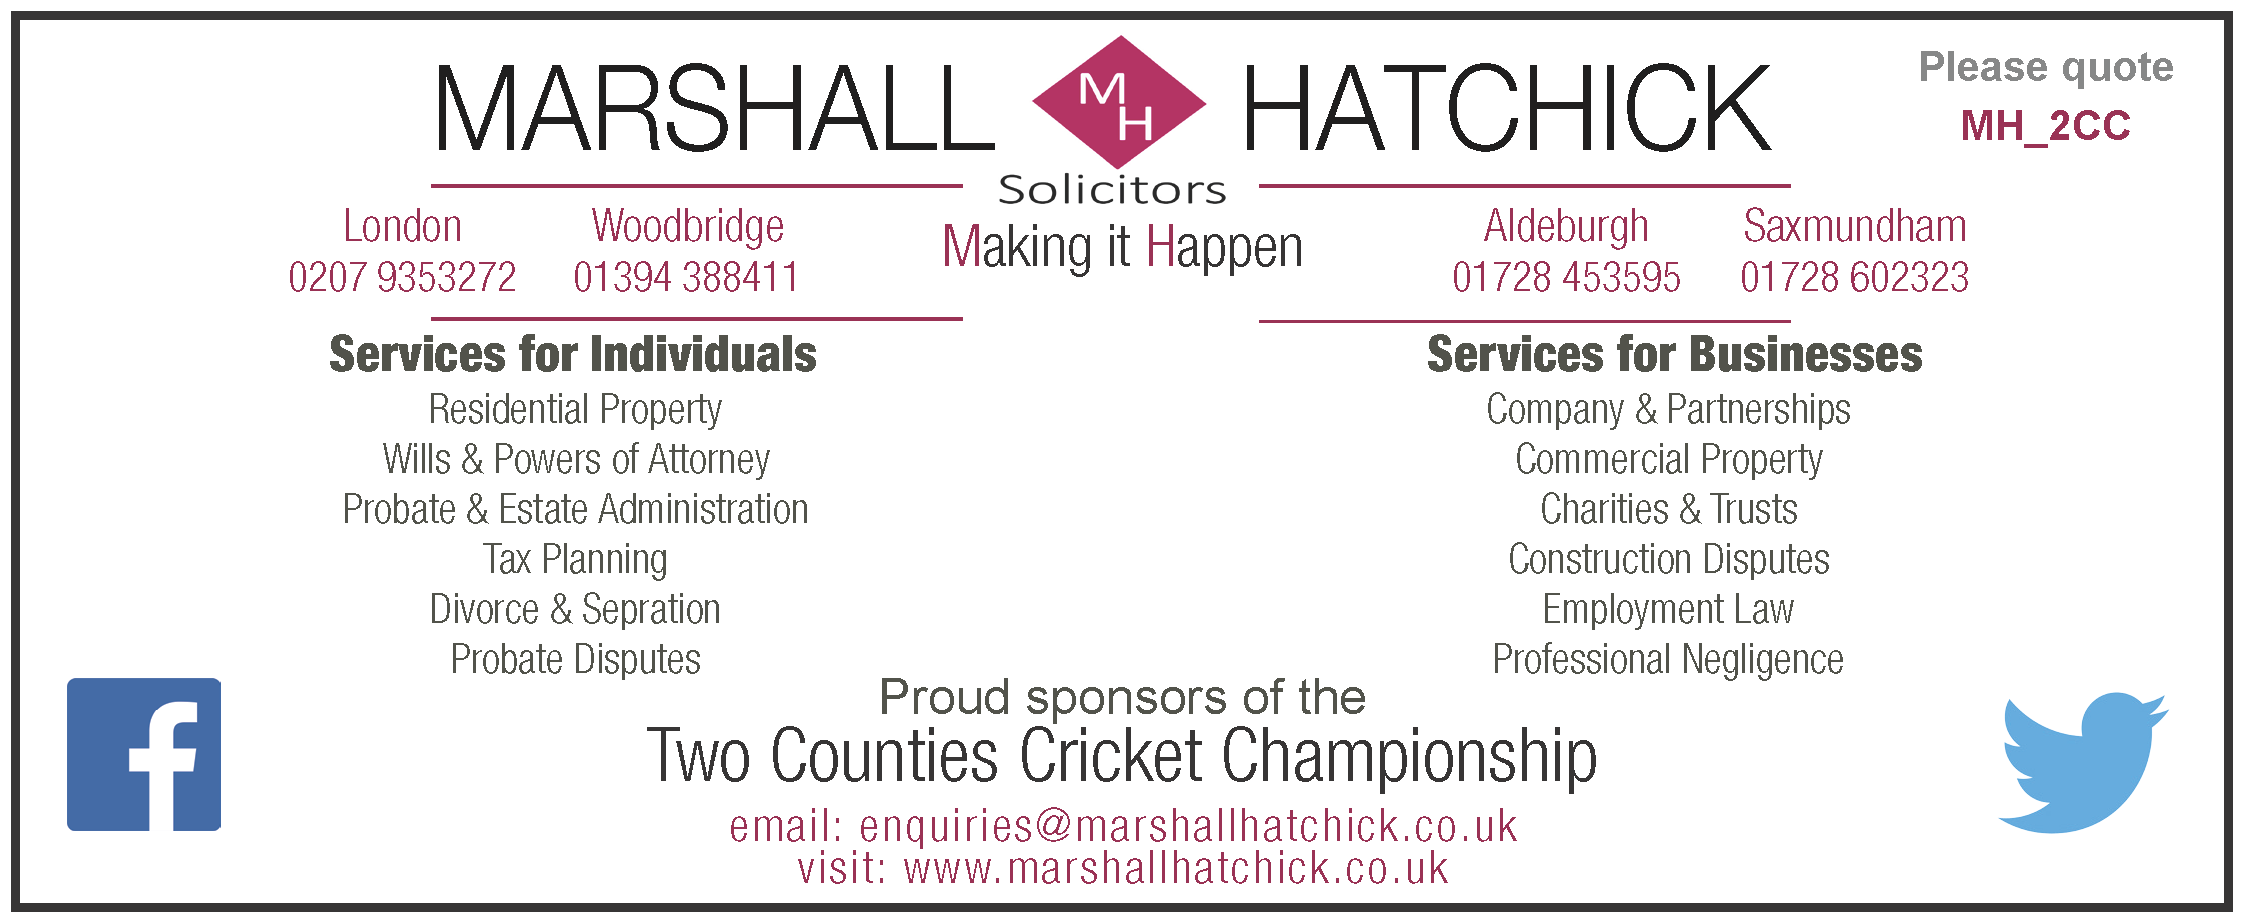 Marshall Hatchick Solicitors